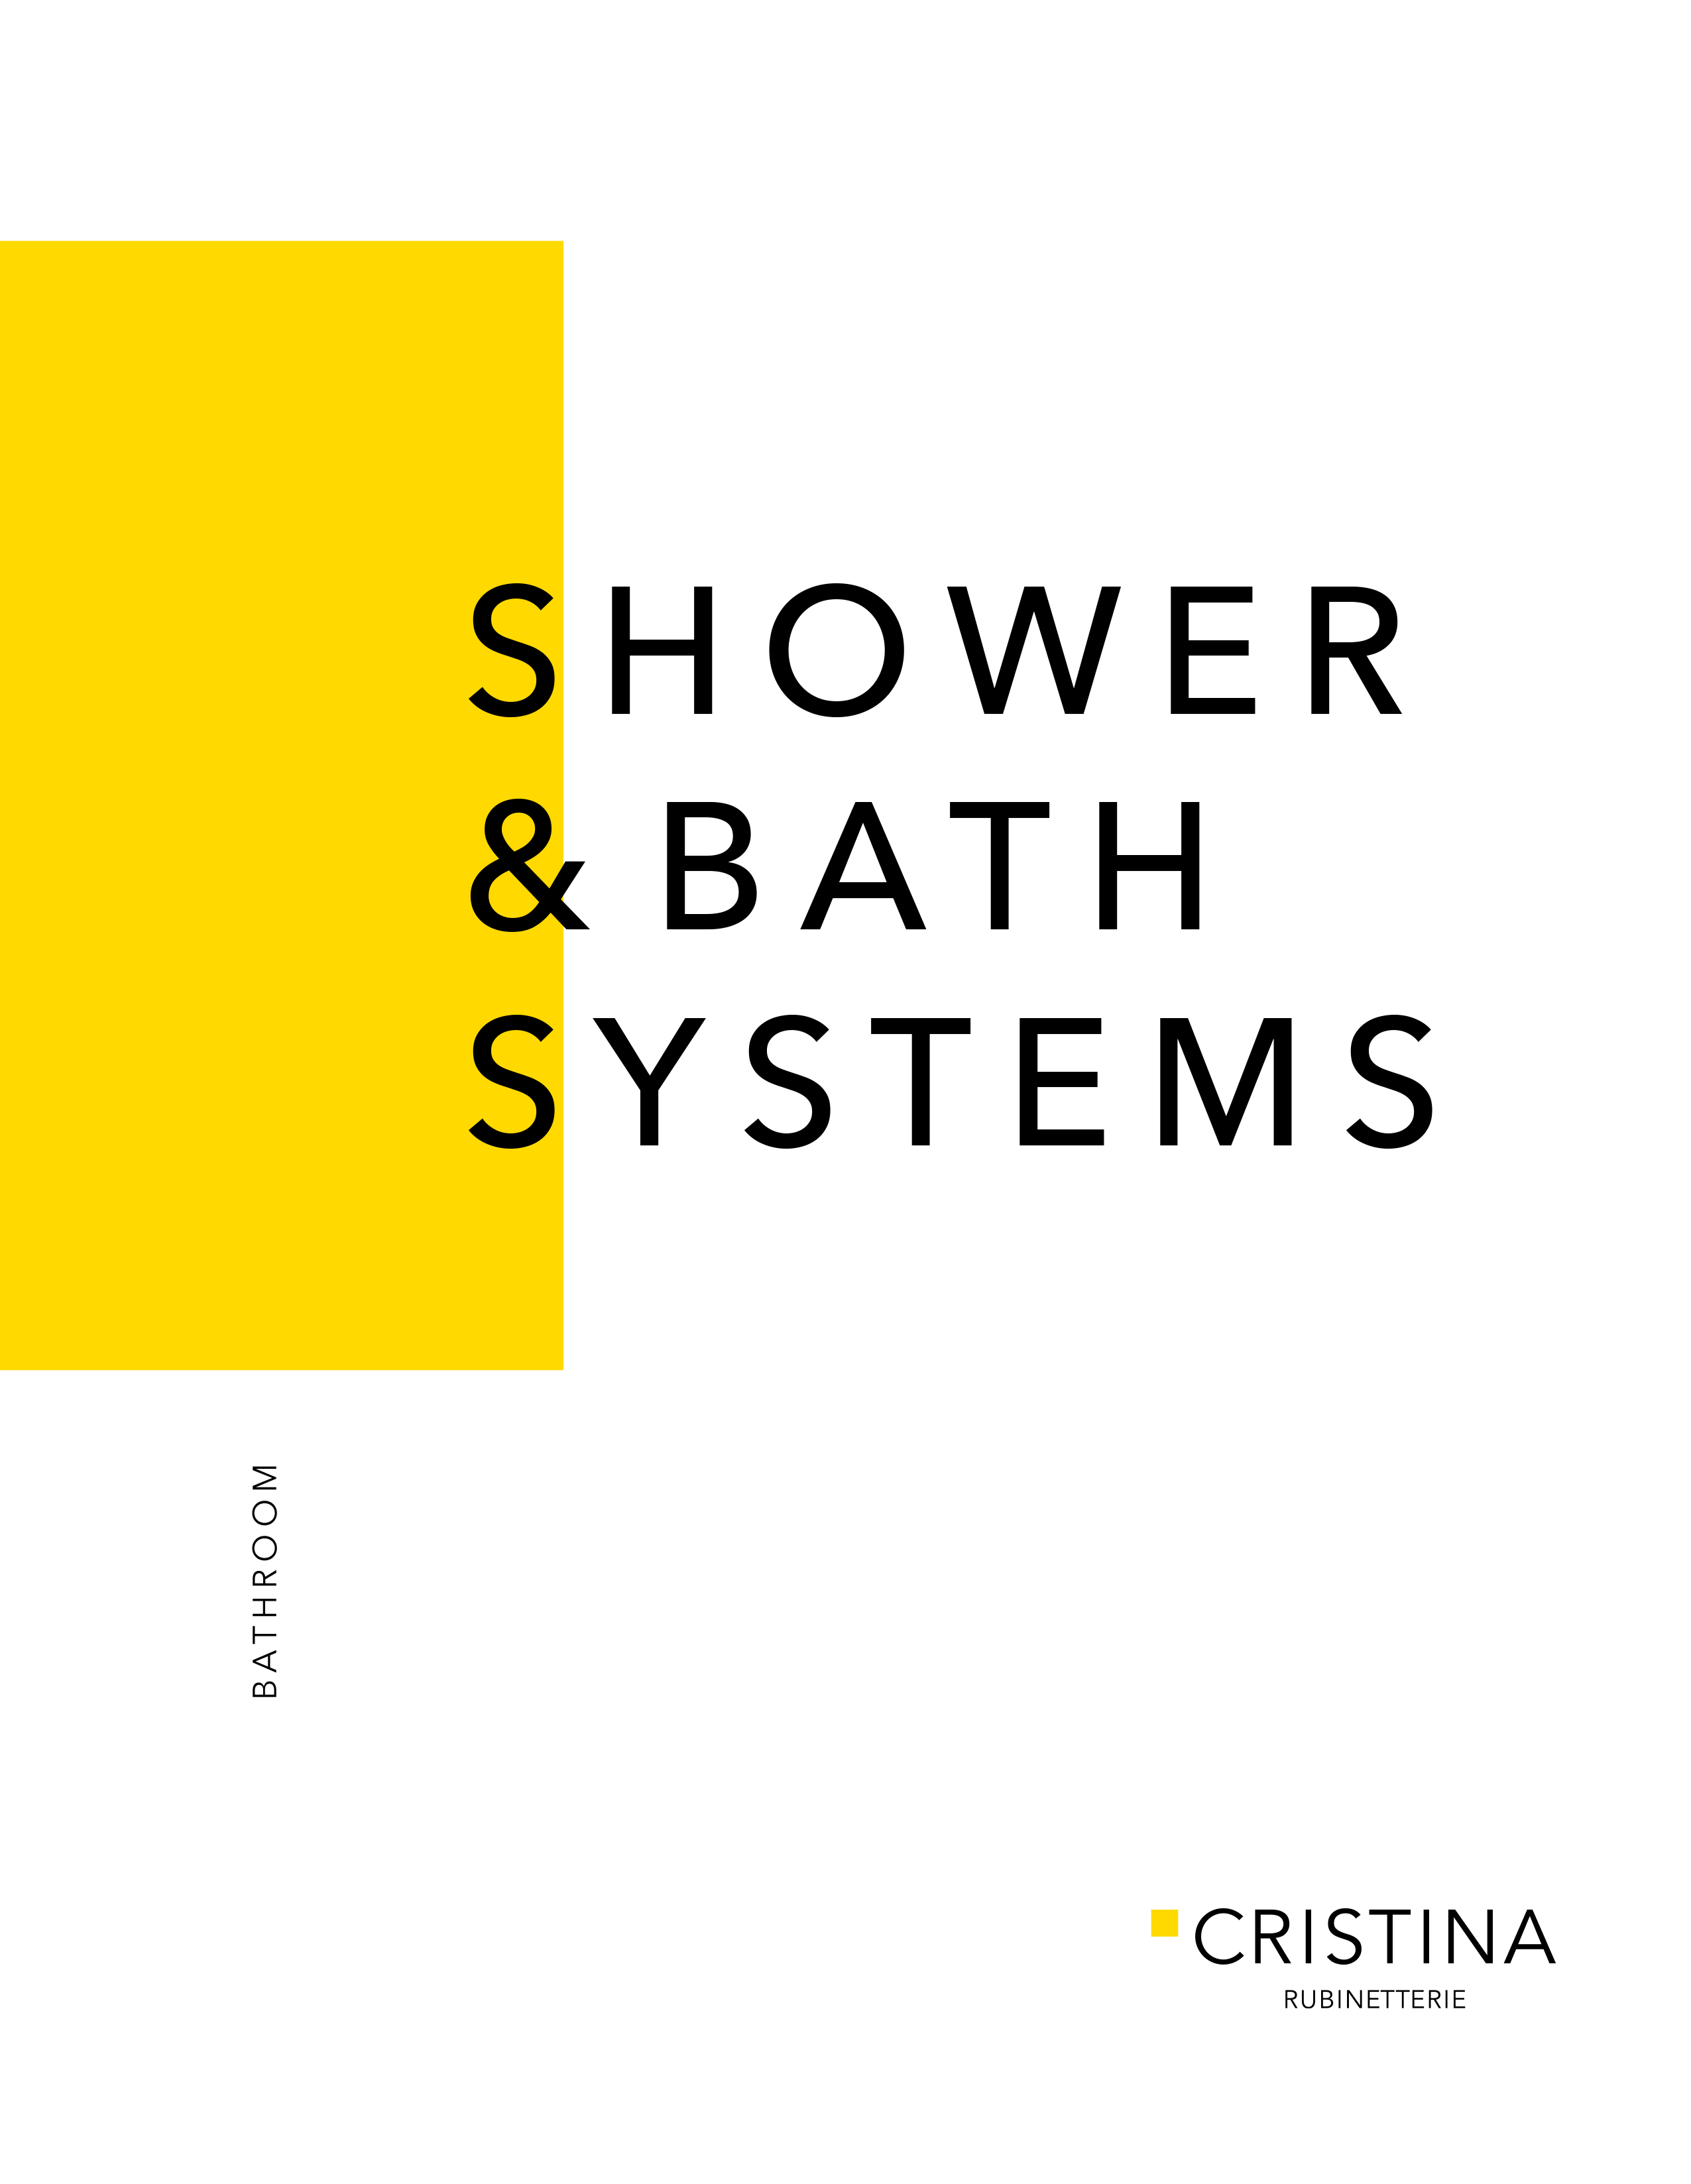 SHOWER & BATH SYSTEMS